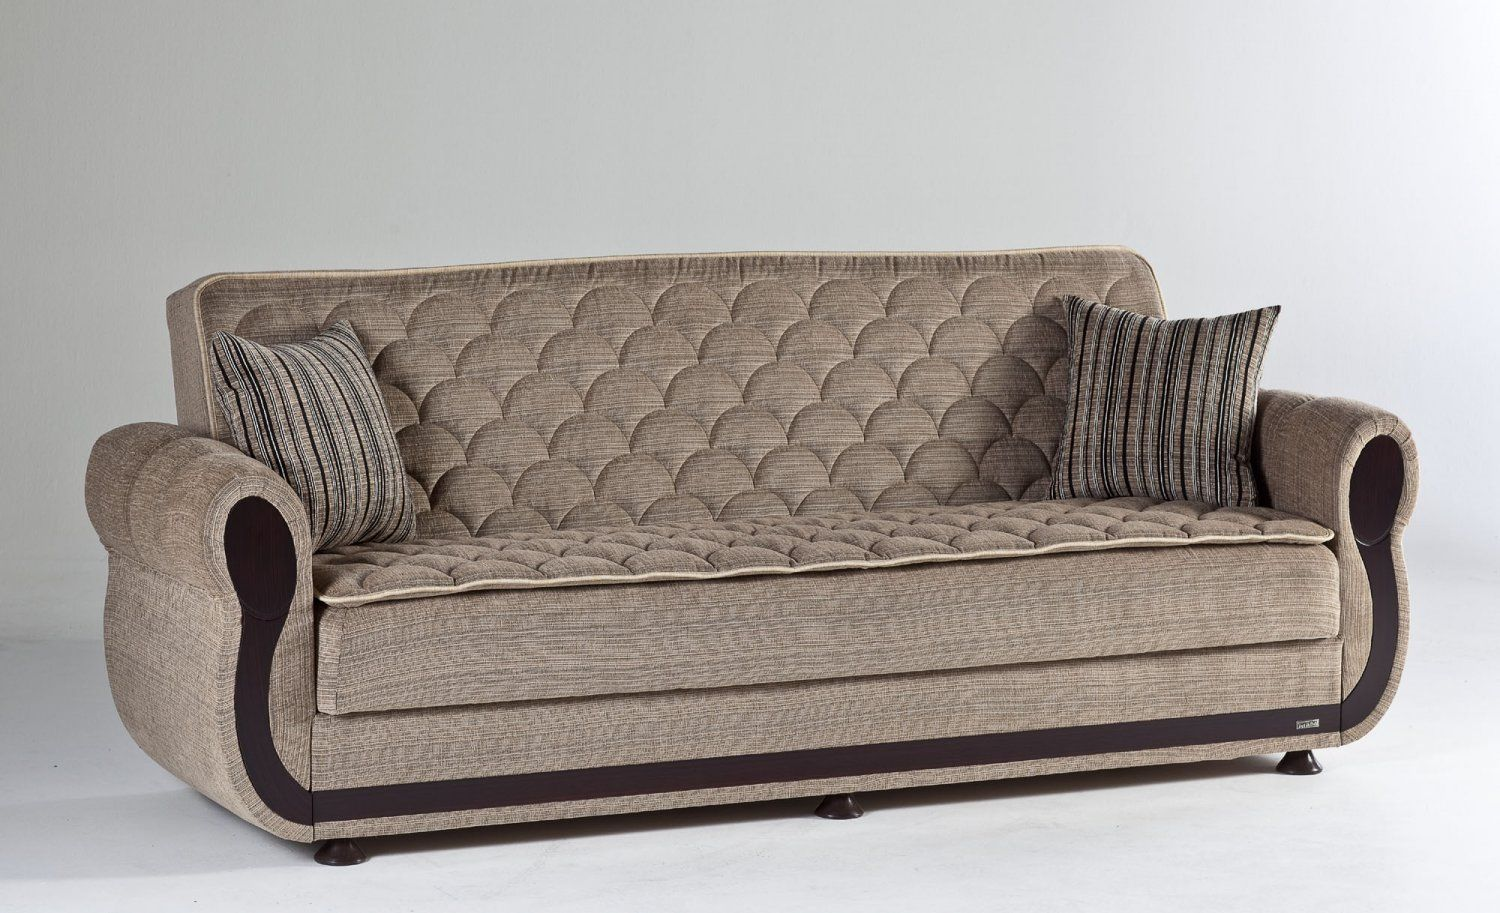 Argos in Zilkade Lt Brown Sleeper Sofa  by Sunset